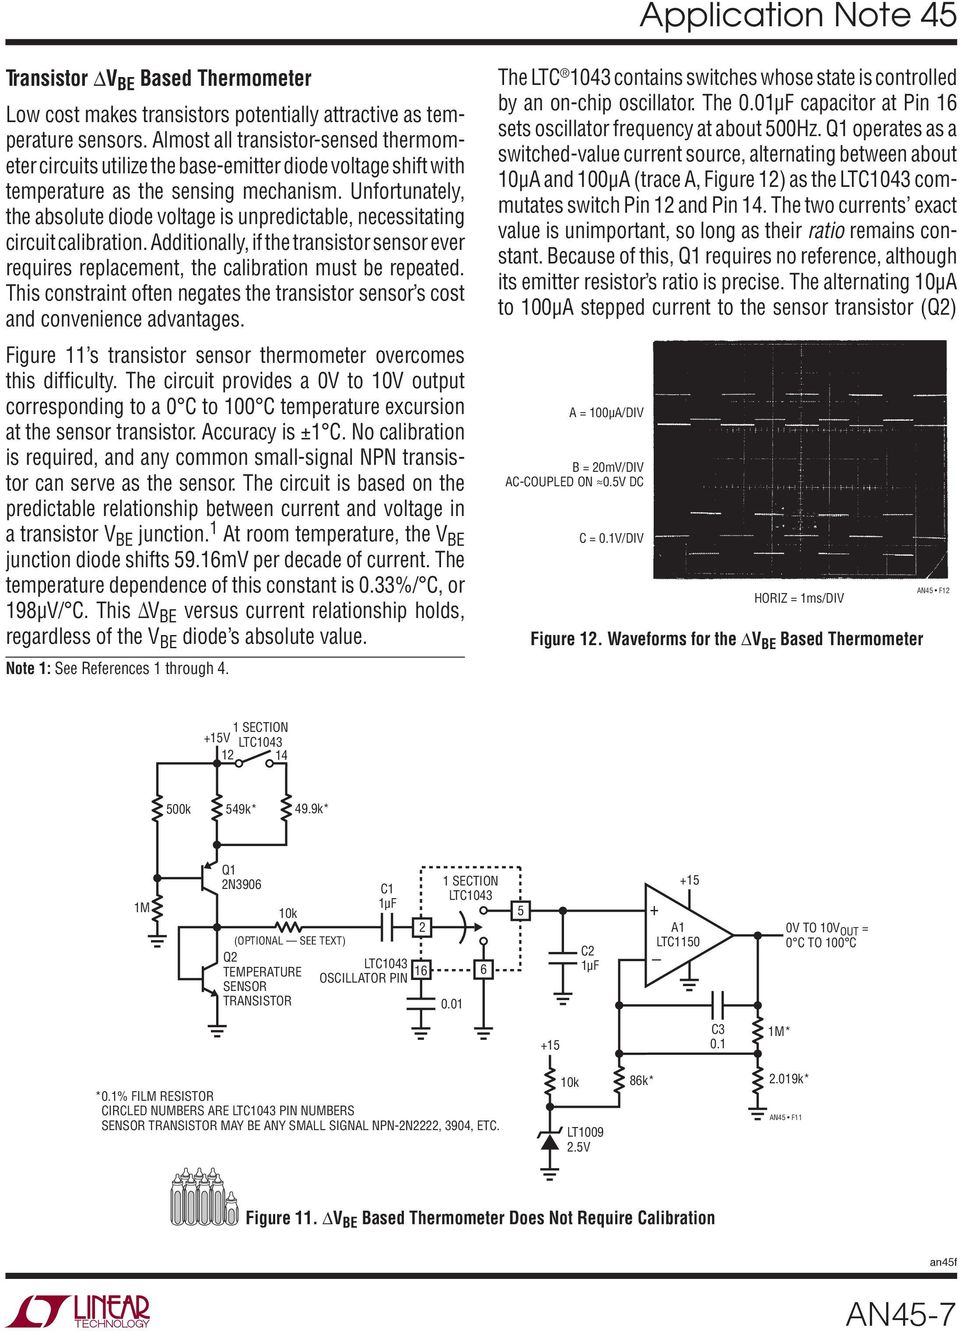 Application Note 45 June Measurement And Control Circuit Collection Temperaturecompensated Diode Input Power Detector 555 Unfortunately The Absolute Voltage Is Unpredictable Necessitating Calibration Additionally If